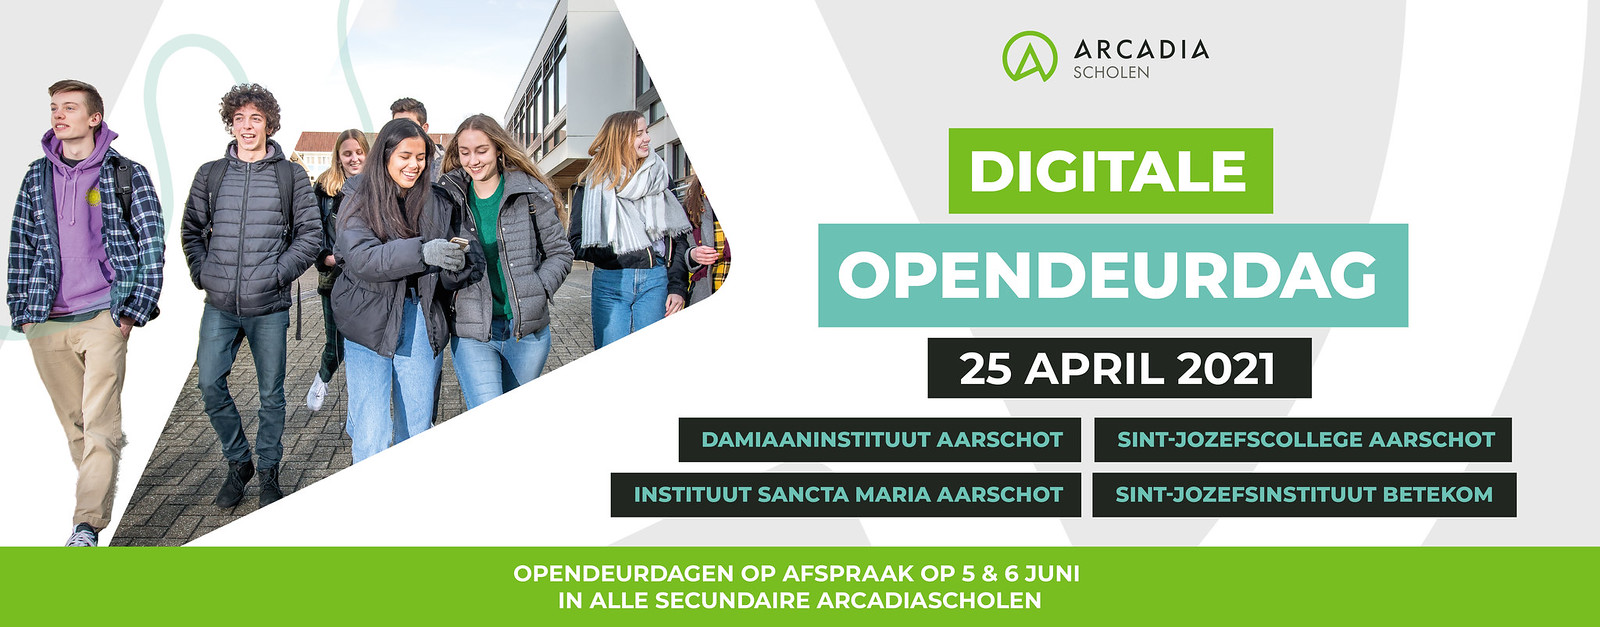 Digitale opendeurdag